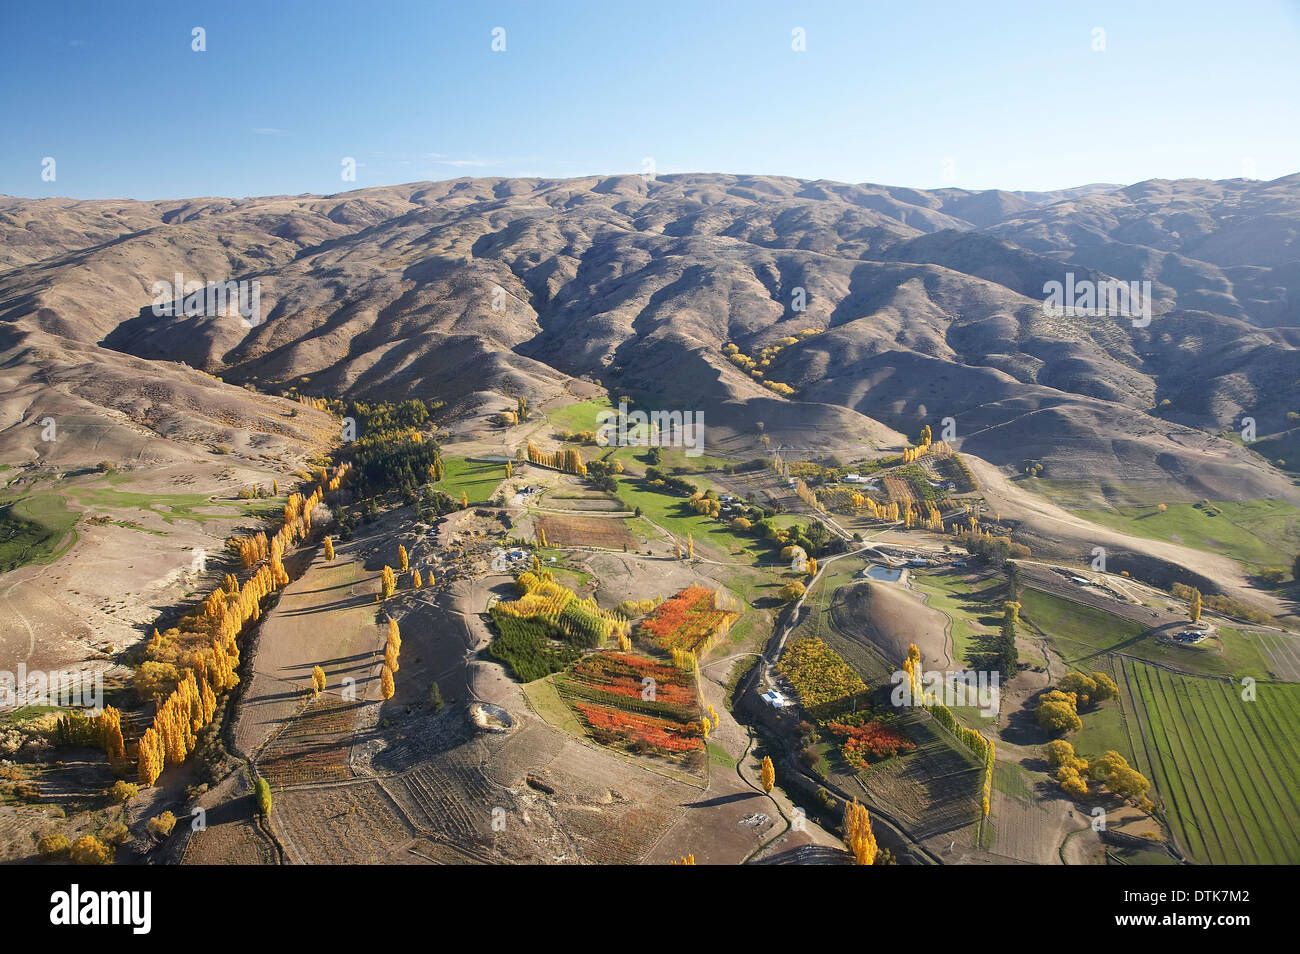 Orchards, Farms and Carrick Range, Bannockburn, Central Otago, South Island, New Zealand - aerial - Stock Image